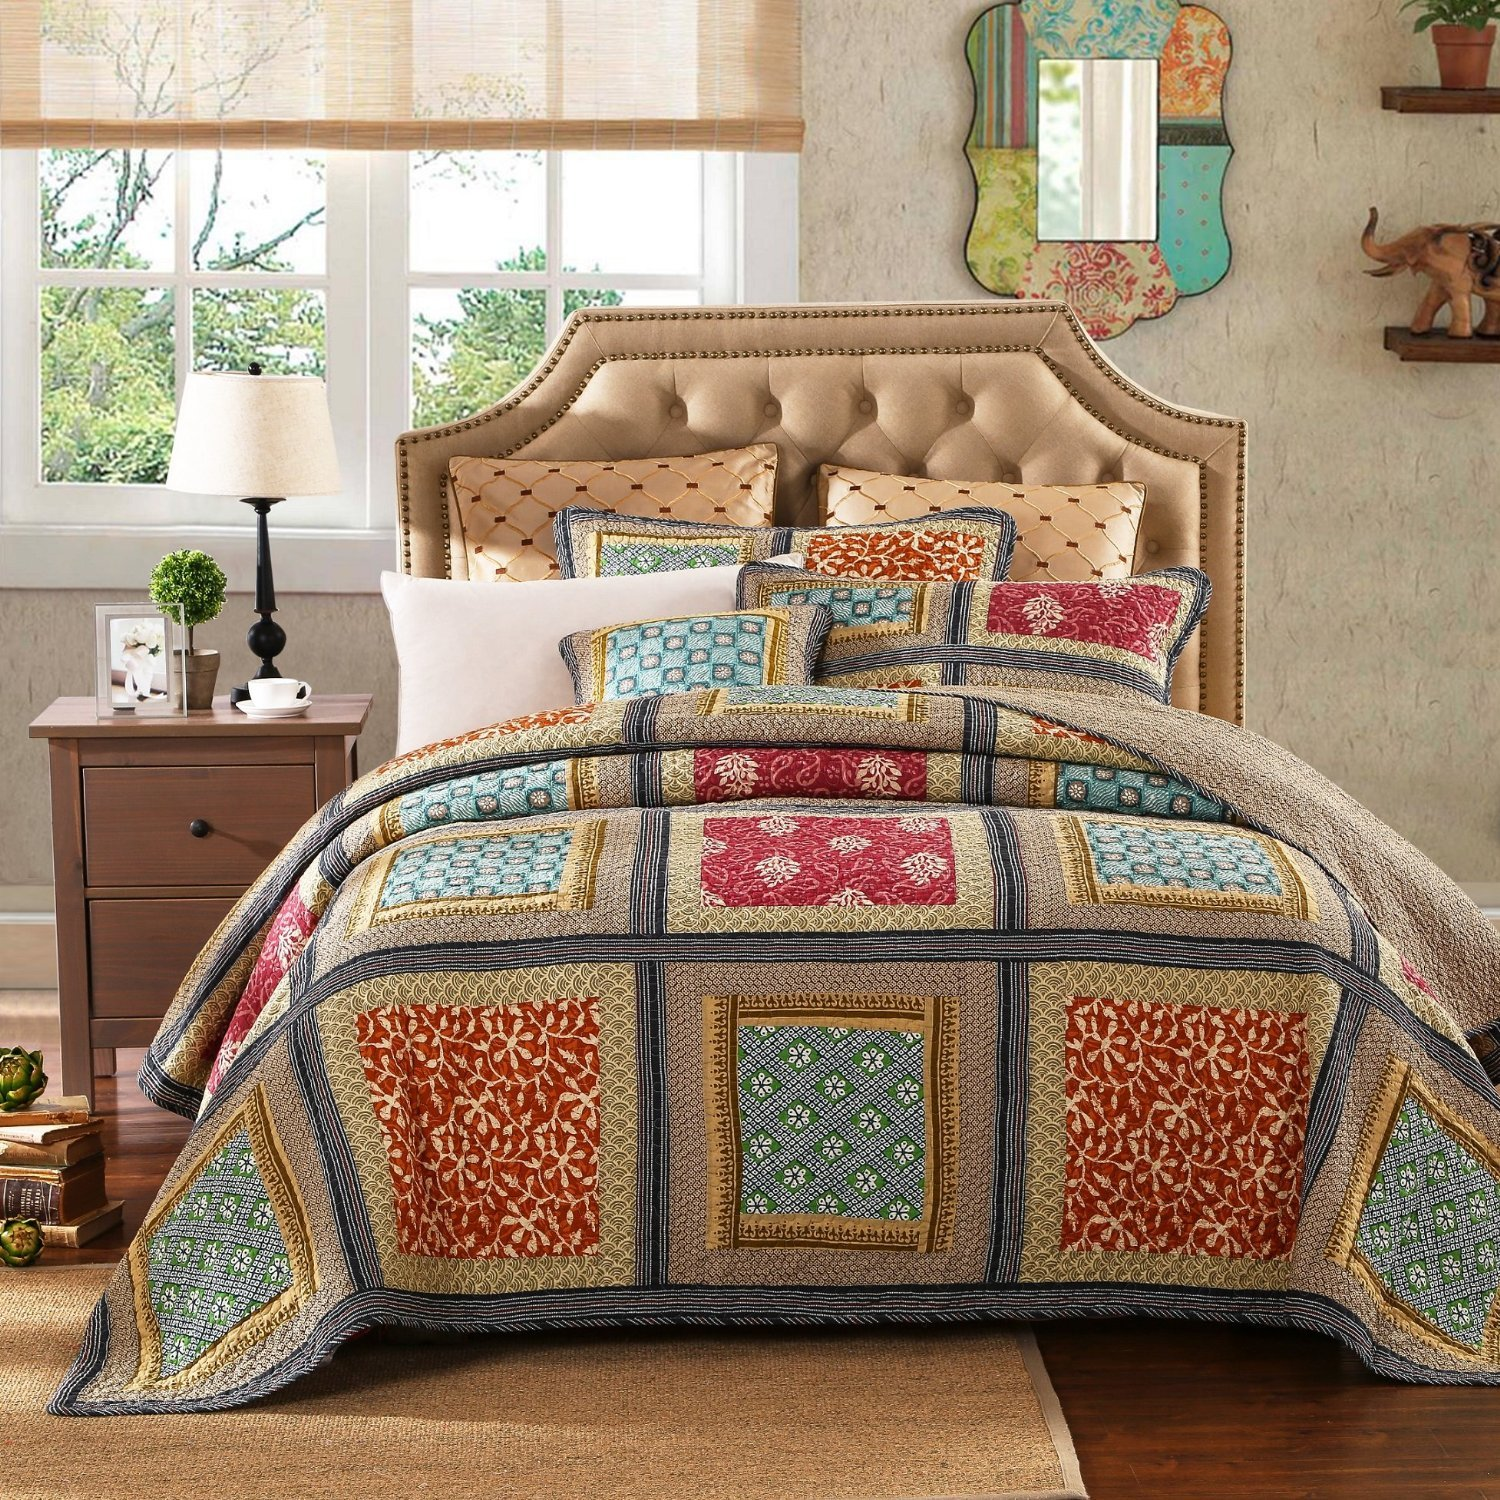 Dada Bedding Collection Reversible Bohemian Real Patchwork Gallery of Roses Cotton Quilt Bedspread Set, Multi-Colored, Cal King, 3-Pieces by DaDa Bedding Collection (Image #6)